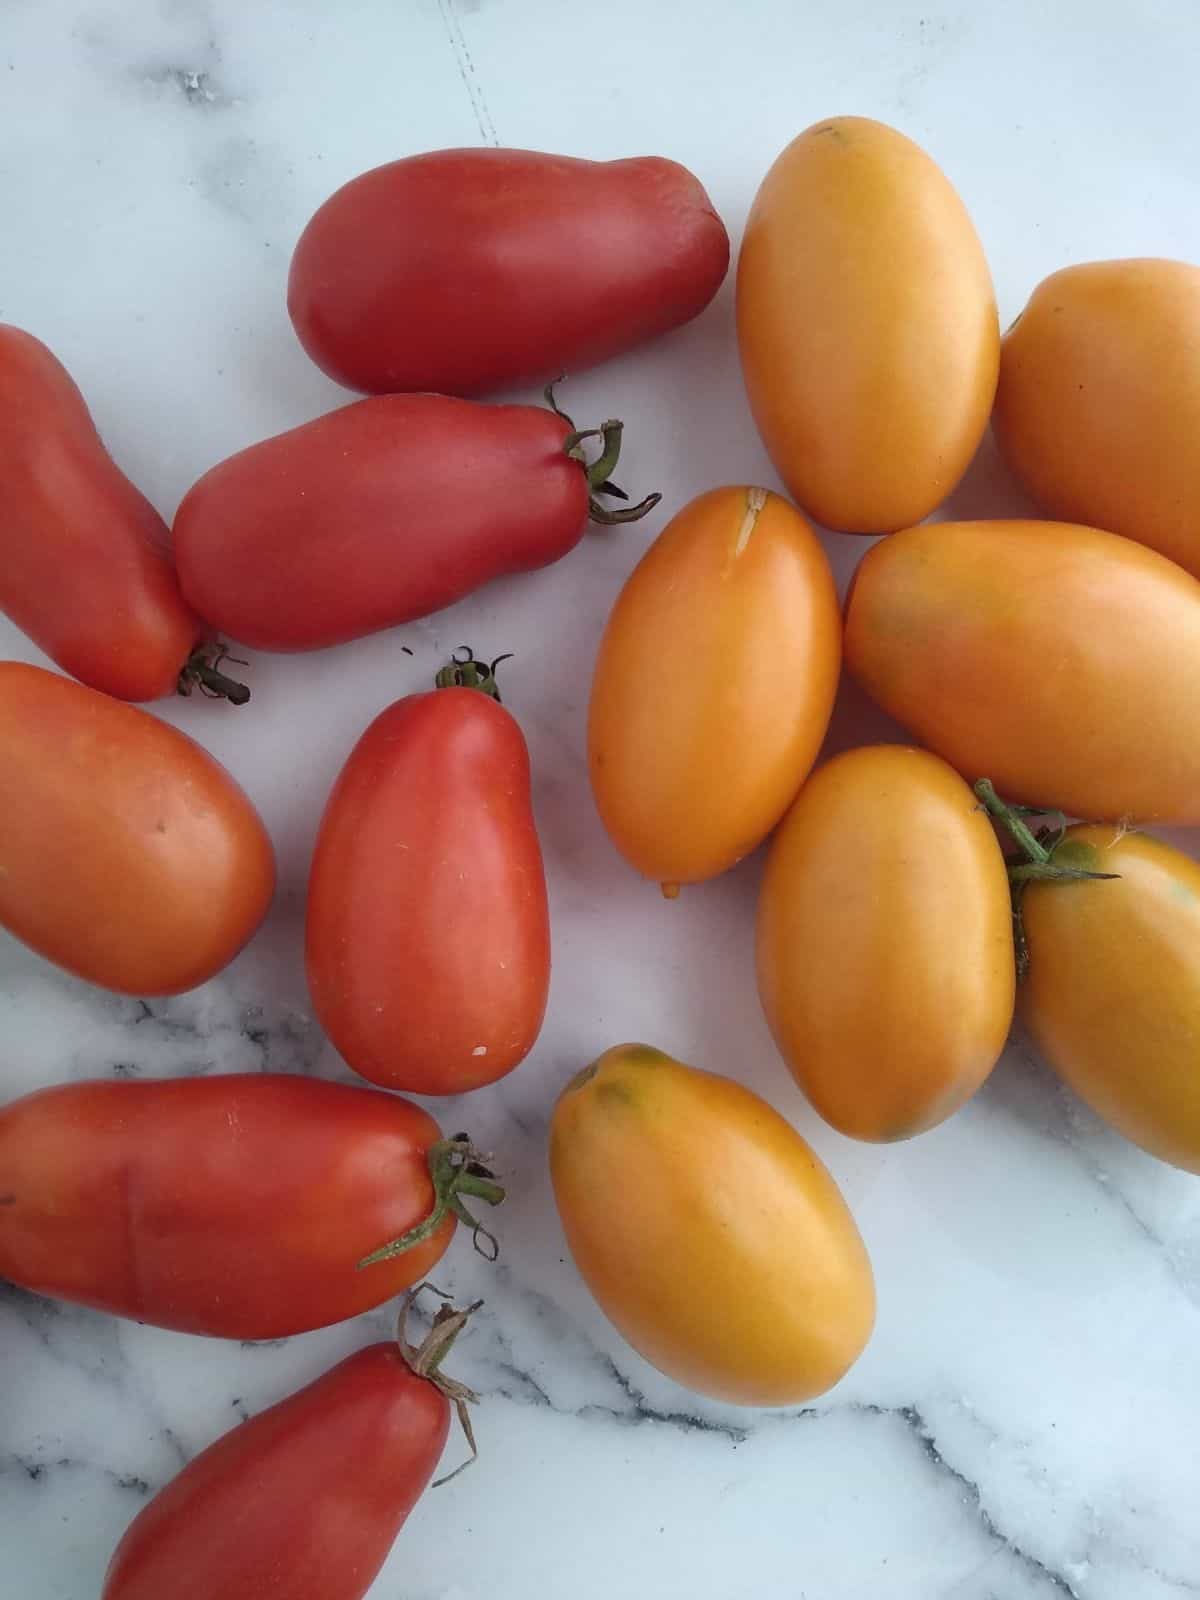 Red and orange Roma style paste tomatoes on a white with black surface.